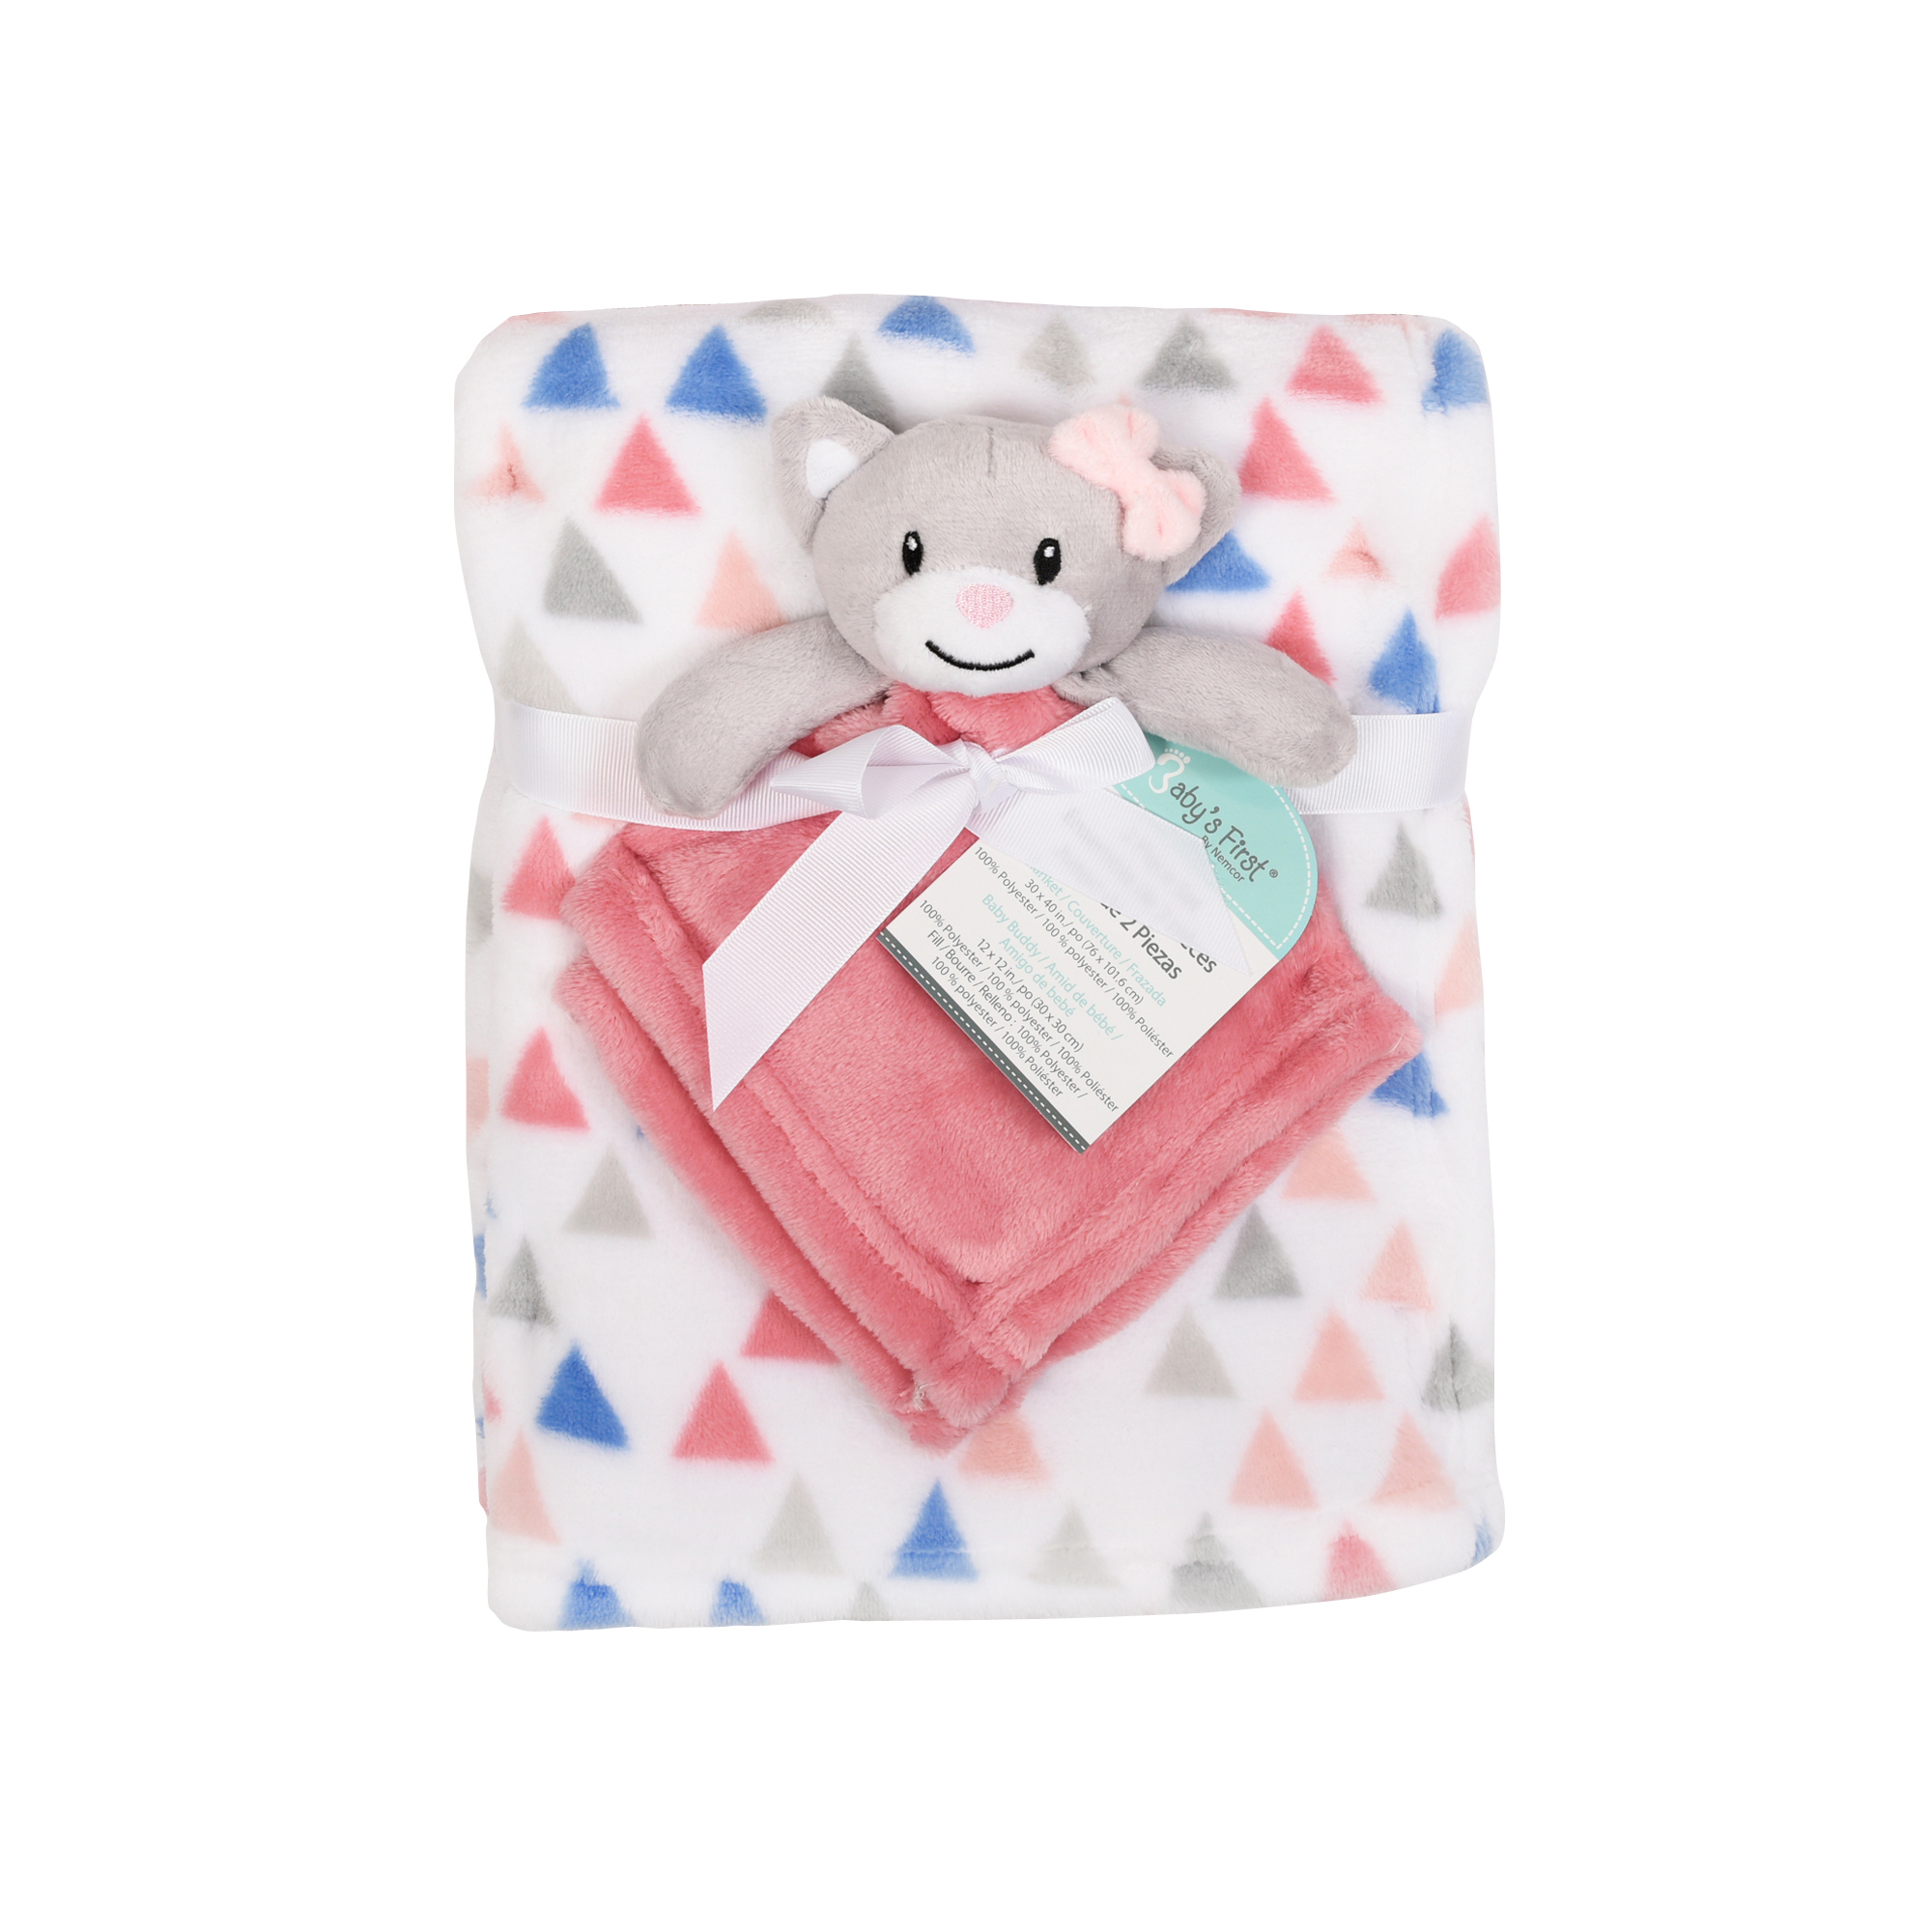 Baby S First By Nemcor 2 Piece Blanket And Buddy Gift Set Cat Walmart